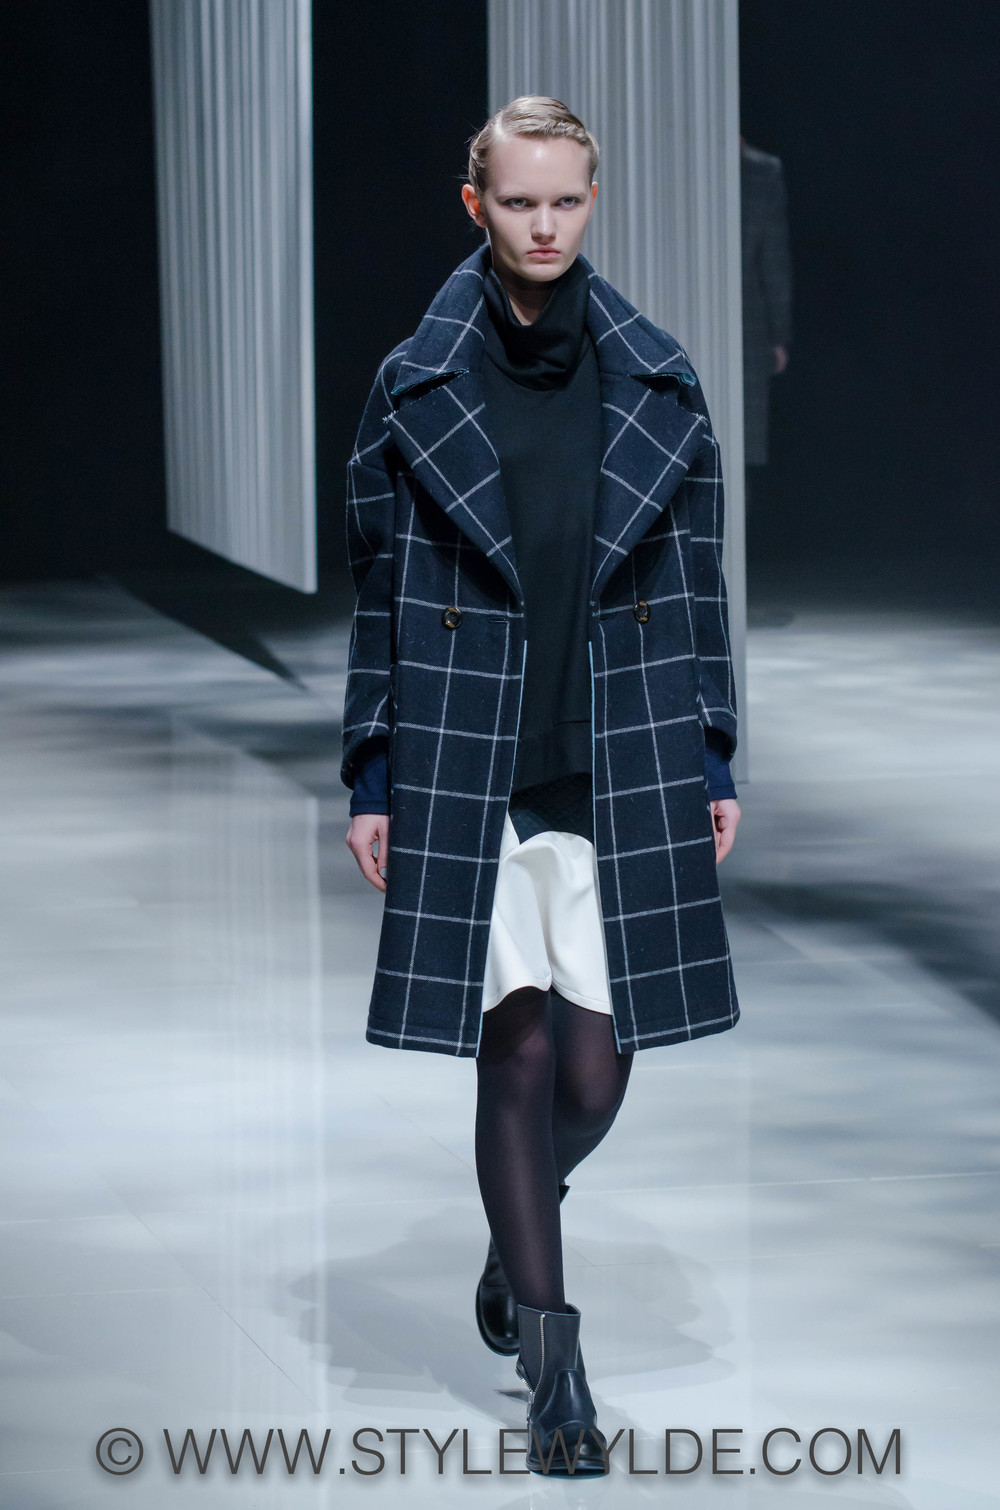 StyleWylde_Ujoh_AW14_story (1 of 1)-2.jpg